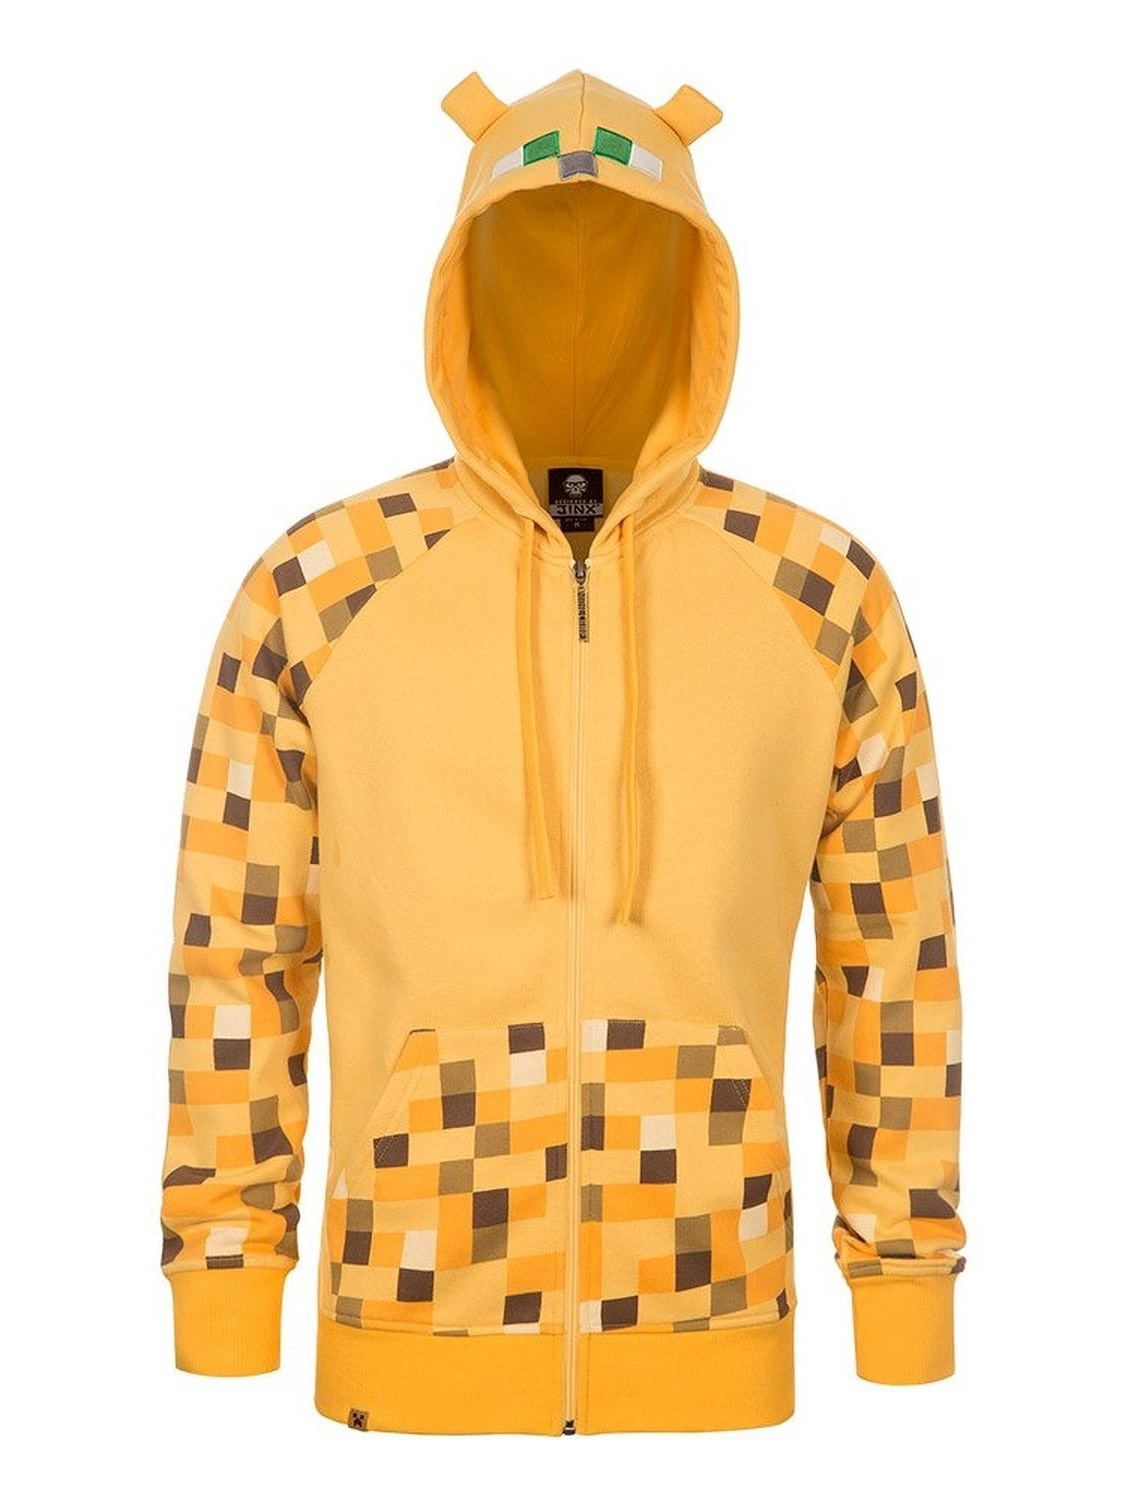 Minecraft Ocelot Youth Yellow Premium Zip-Up Hoodie, X-Large